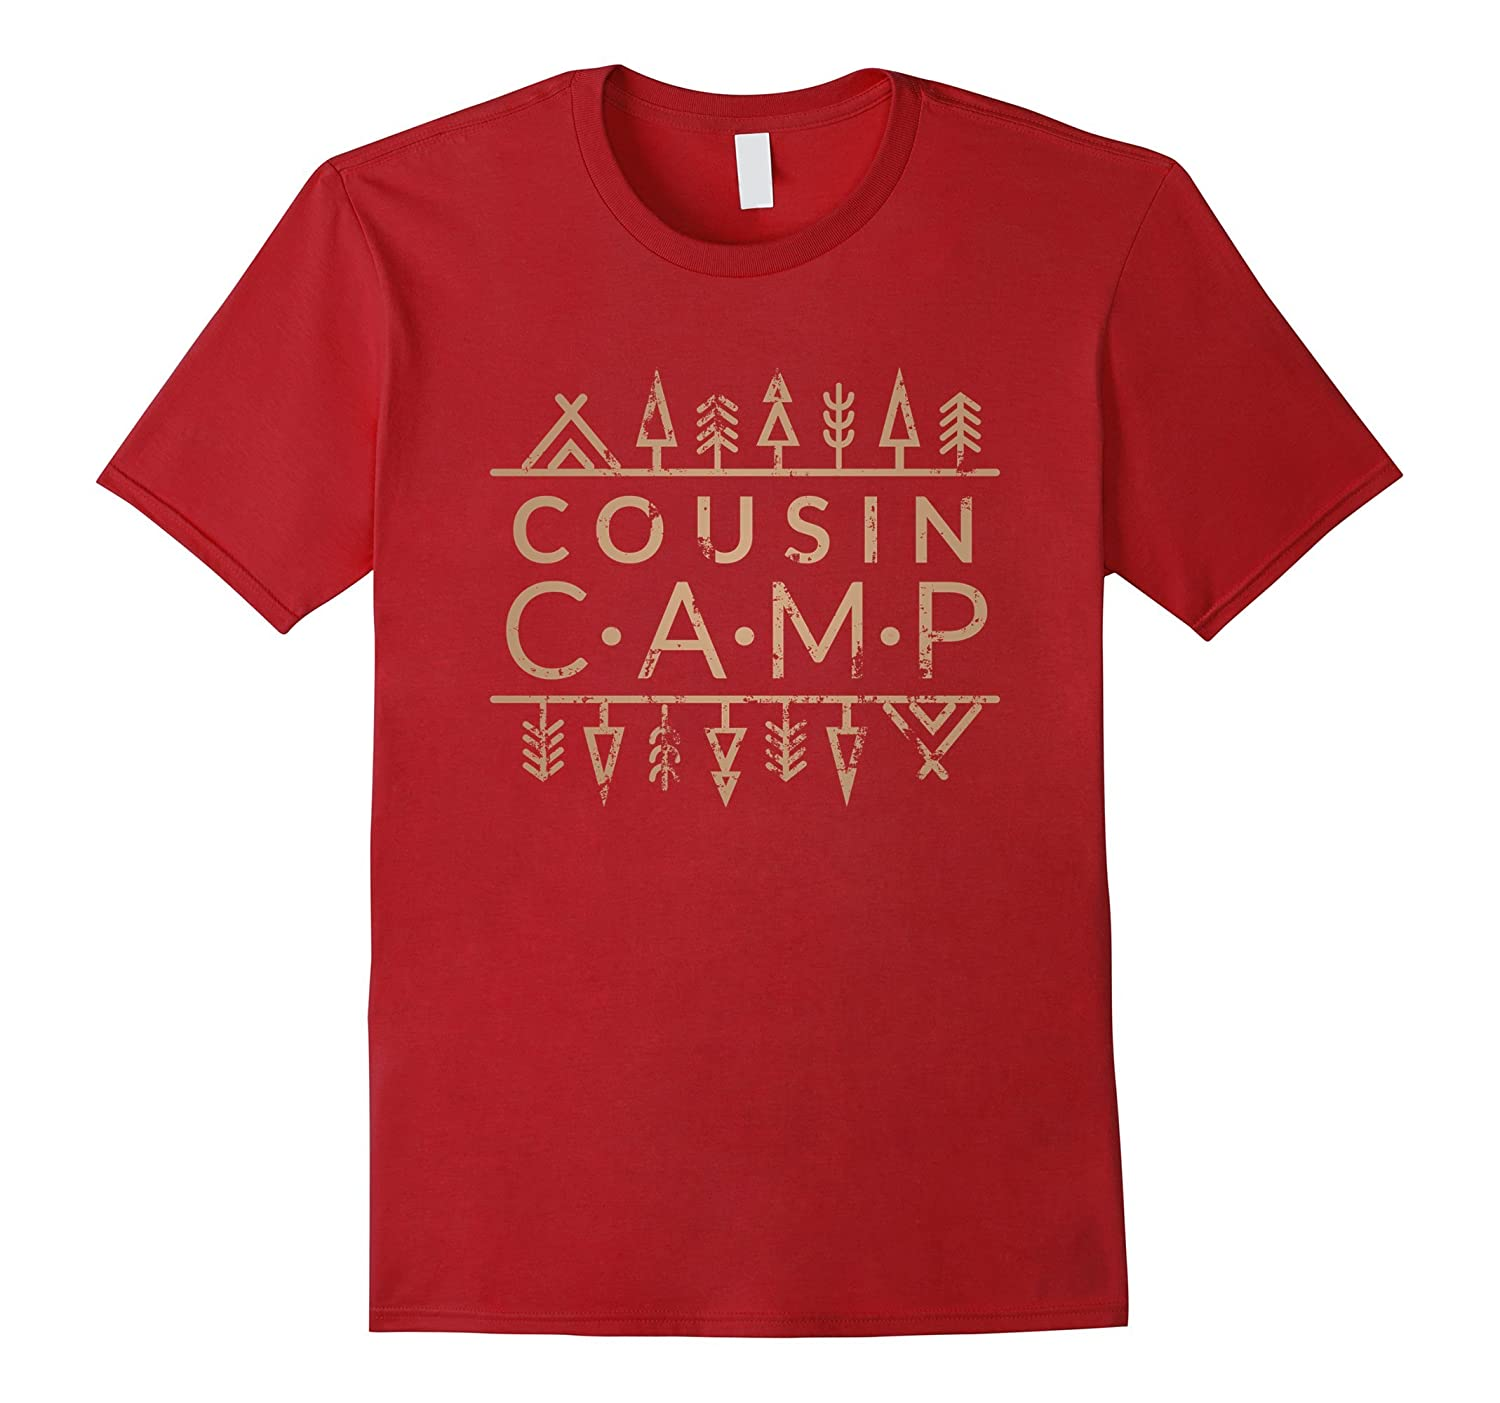 Vintage Family Camp T-Shirt  Cousin CAMP